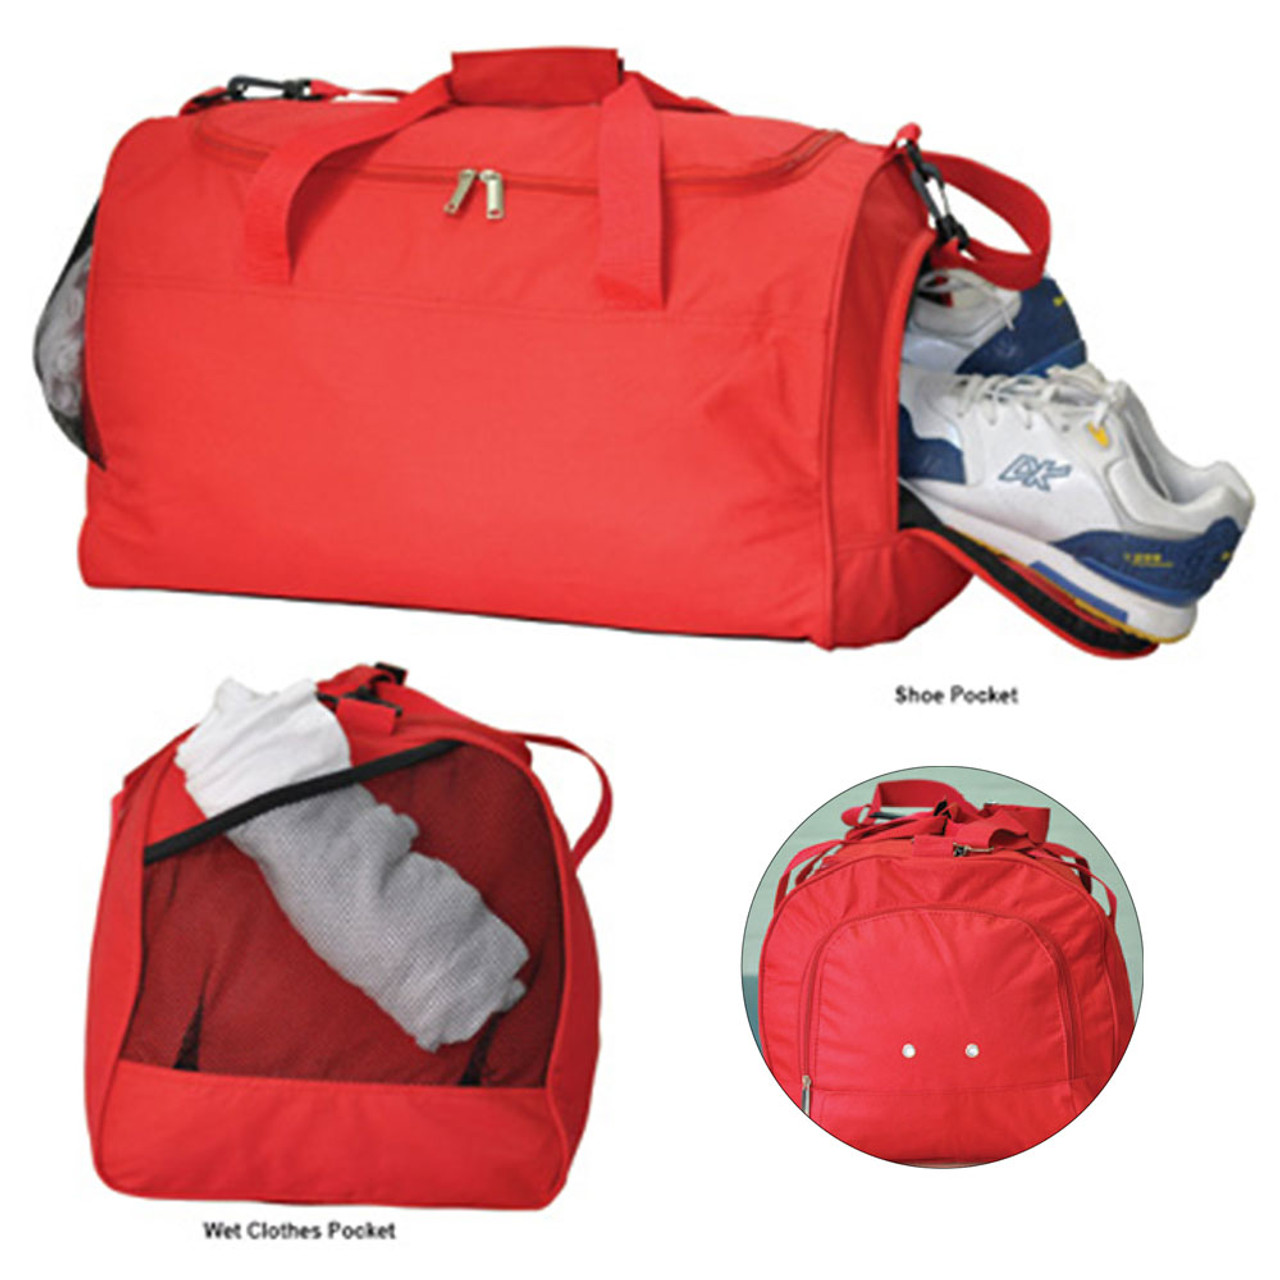 74cd37de7b7ca7 ARENA | Sports Bag | Gym Bags